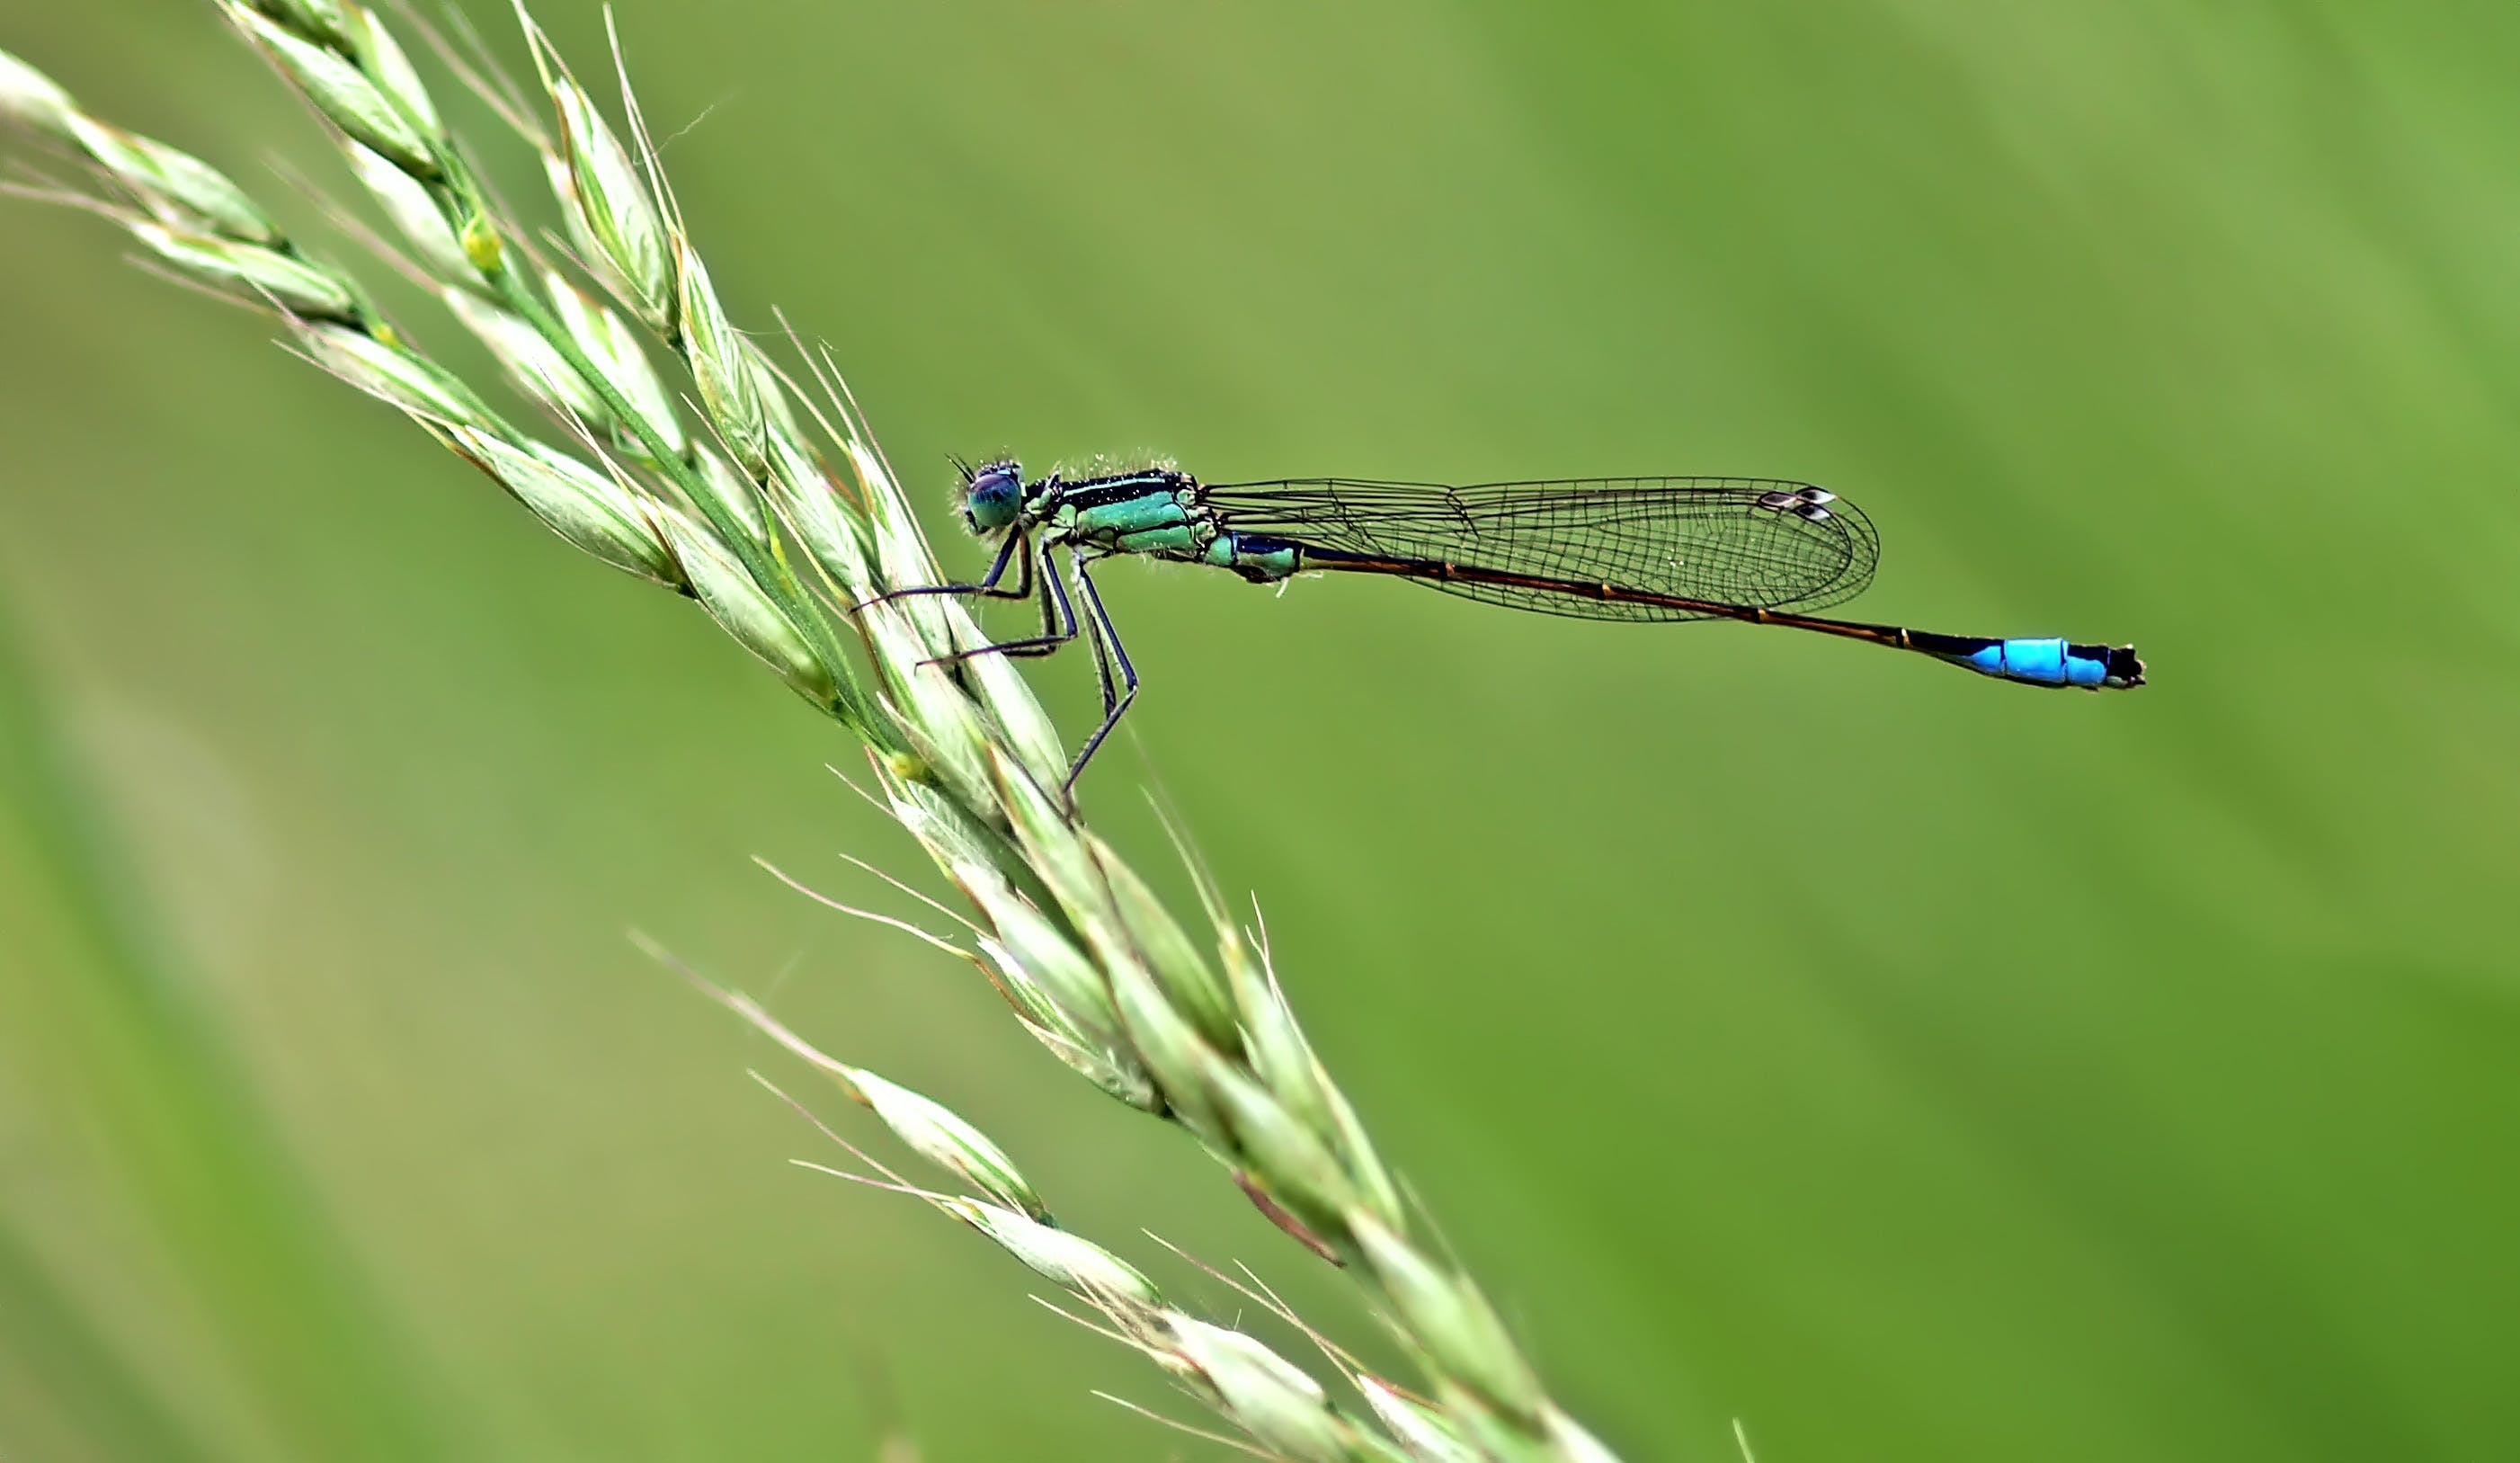 Teal Damselfly Perched on Wheat